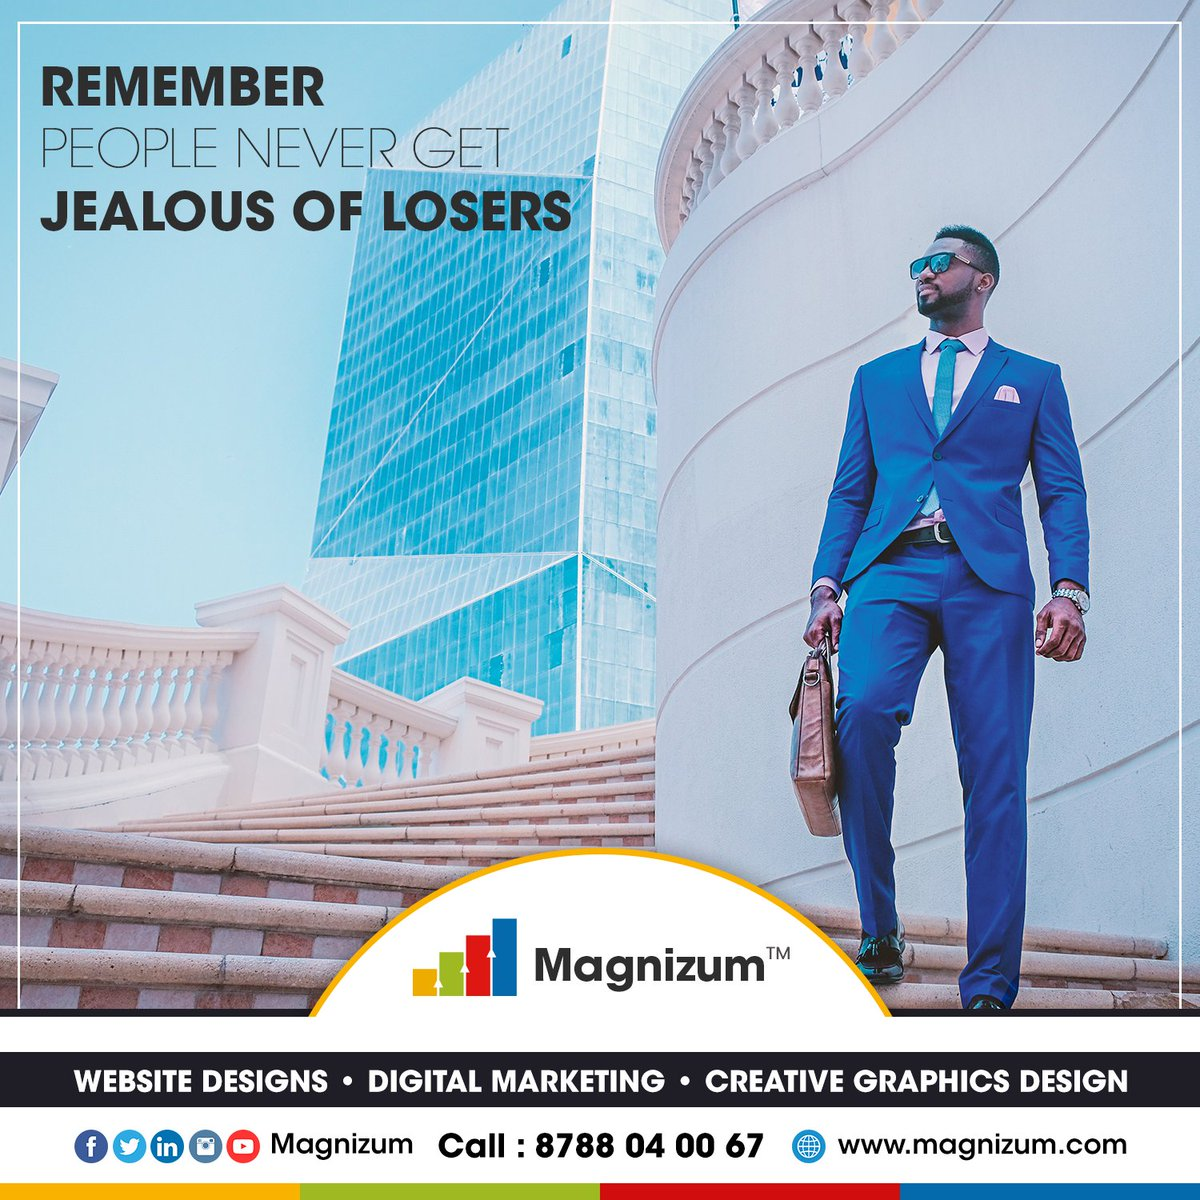 Follow Magnizum - @magnizum  #magnizum #digitalmarketing #marketing #socialmediamarketing #socialmedia #seo #business #onlinemarketing #marketingdigital #entrepreneur #advertising #contentmarketing #marketingtips #marketingstrategy #webdesign #smallbusinesspic.twitter.com/thbqzbnoz9